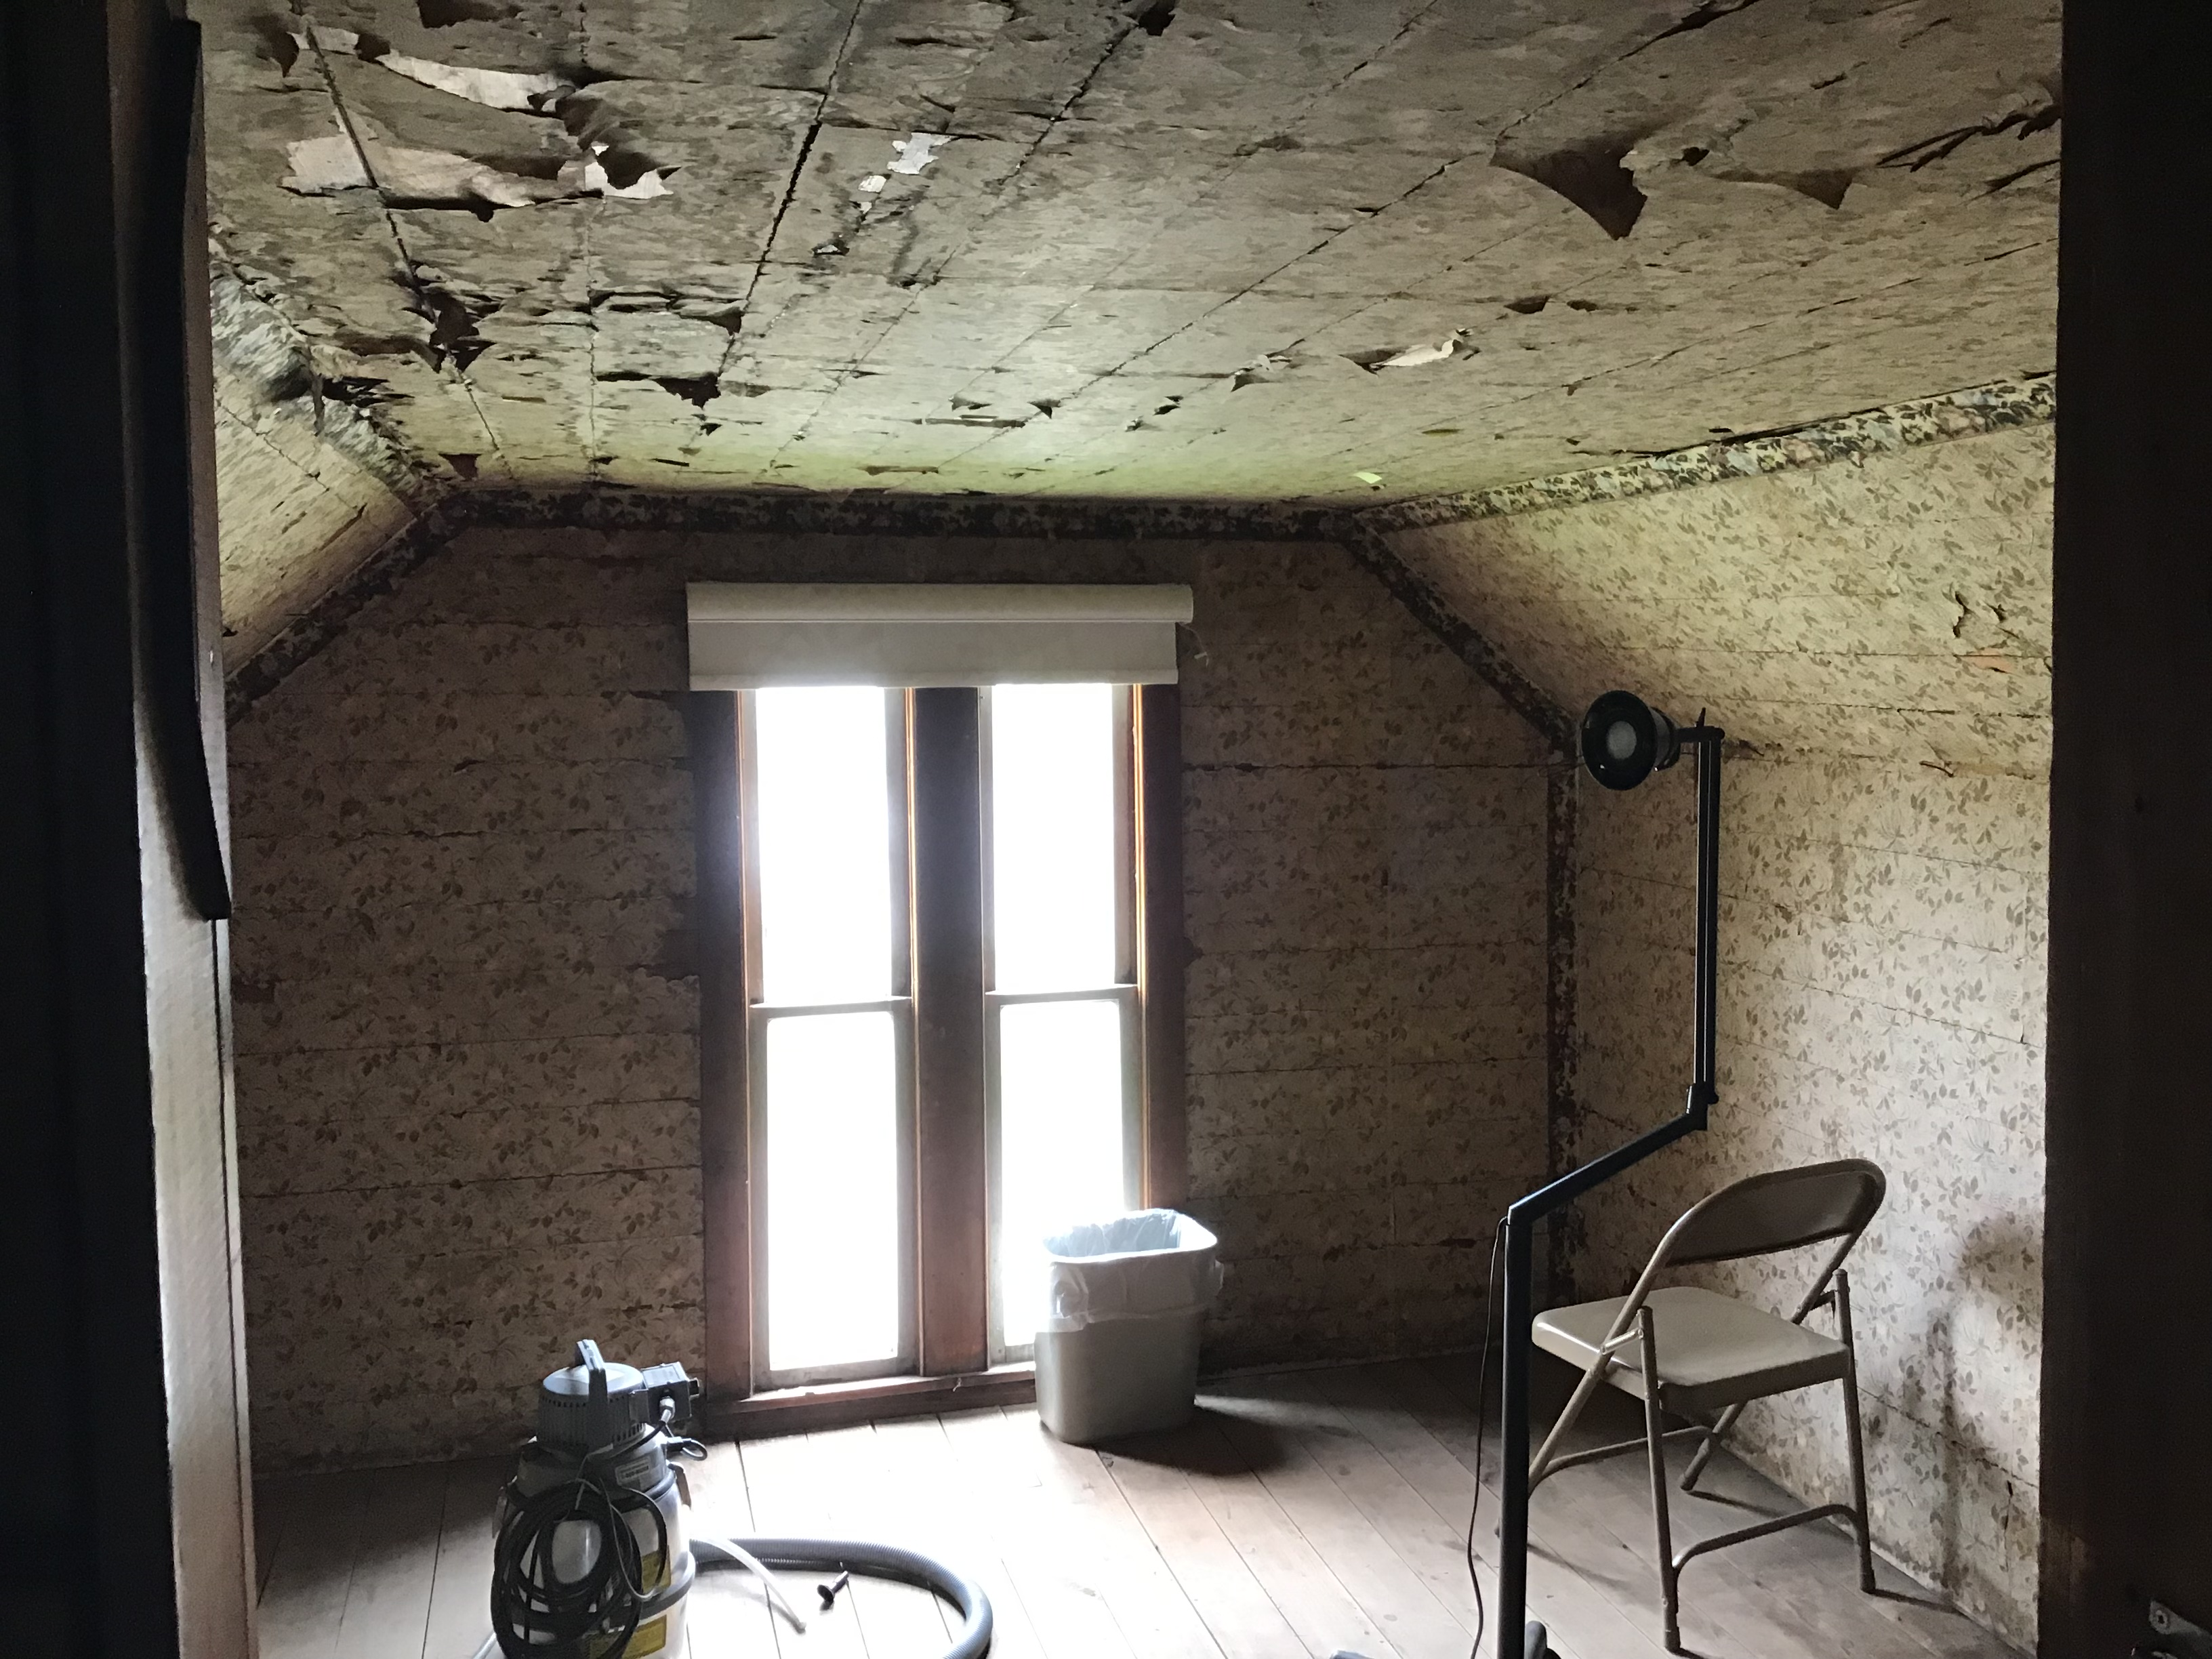 Interior of attic bedroom, with window, floral wallpaper, extensive damage, hanging fragments